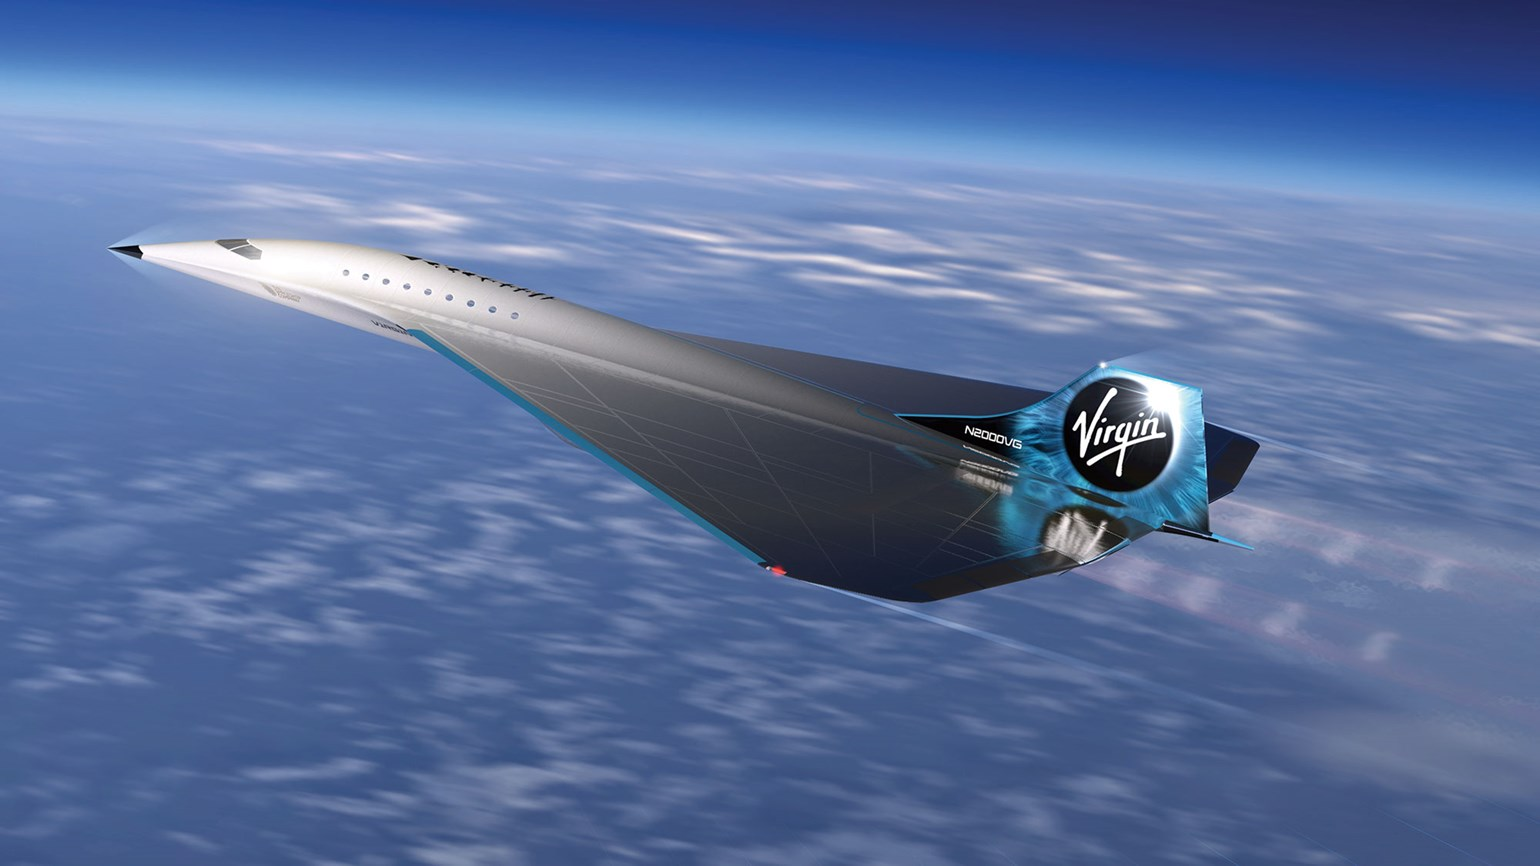 A supersonic aircraft is in the works from Virgin Galactic